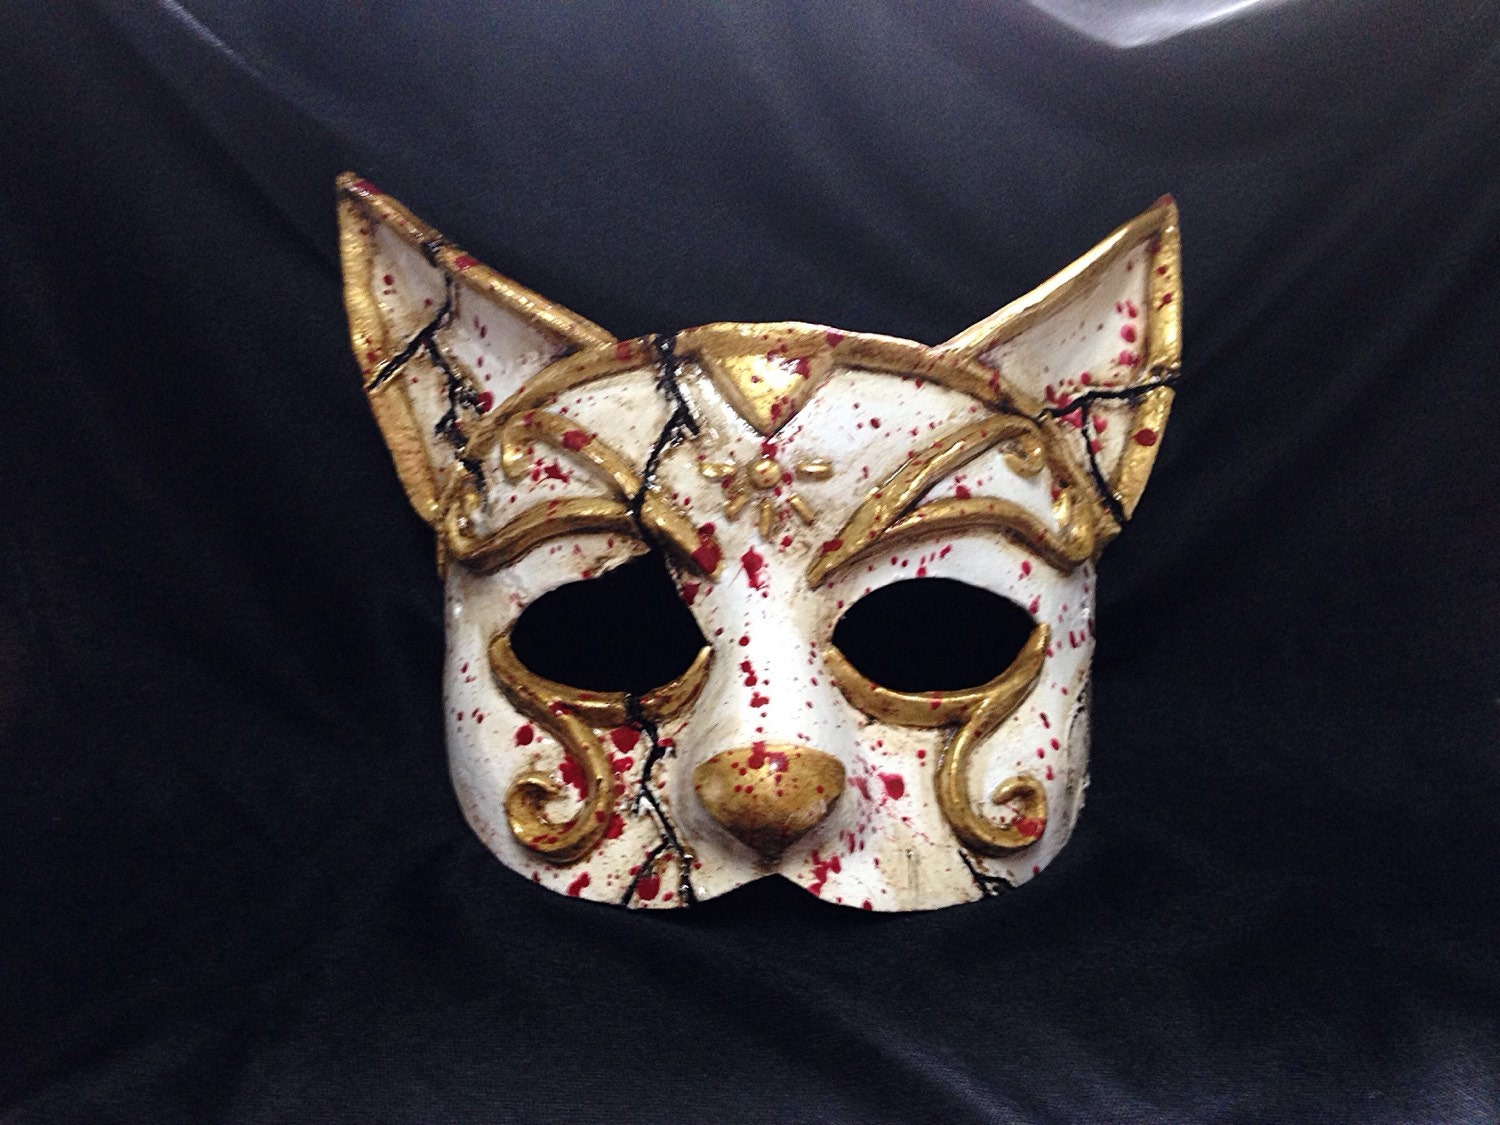 bioshock inspired splicer mask cat by geekoutprops on etsy